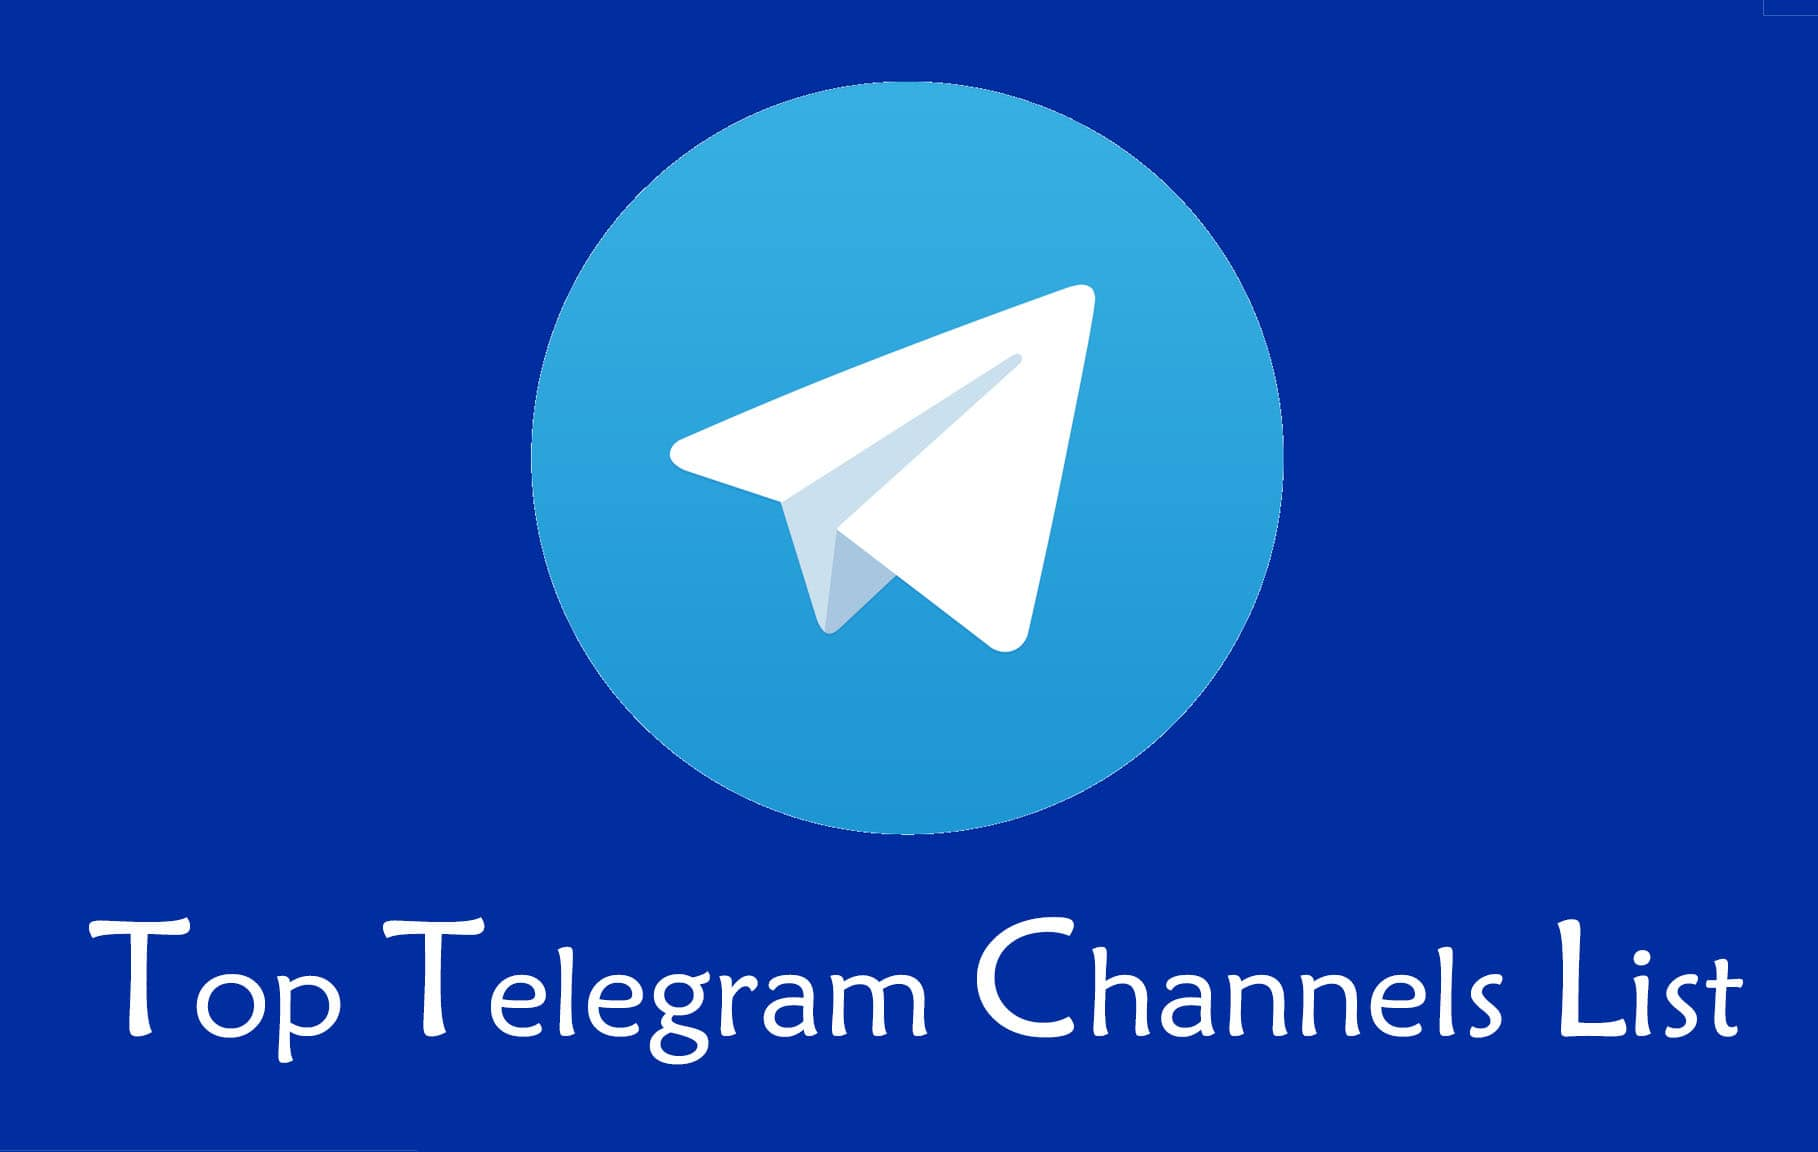 Telegram movie channel for ios. how to report a spam telegram channel.